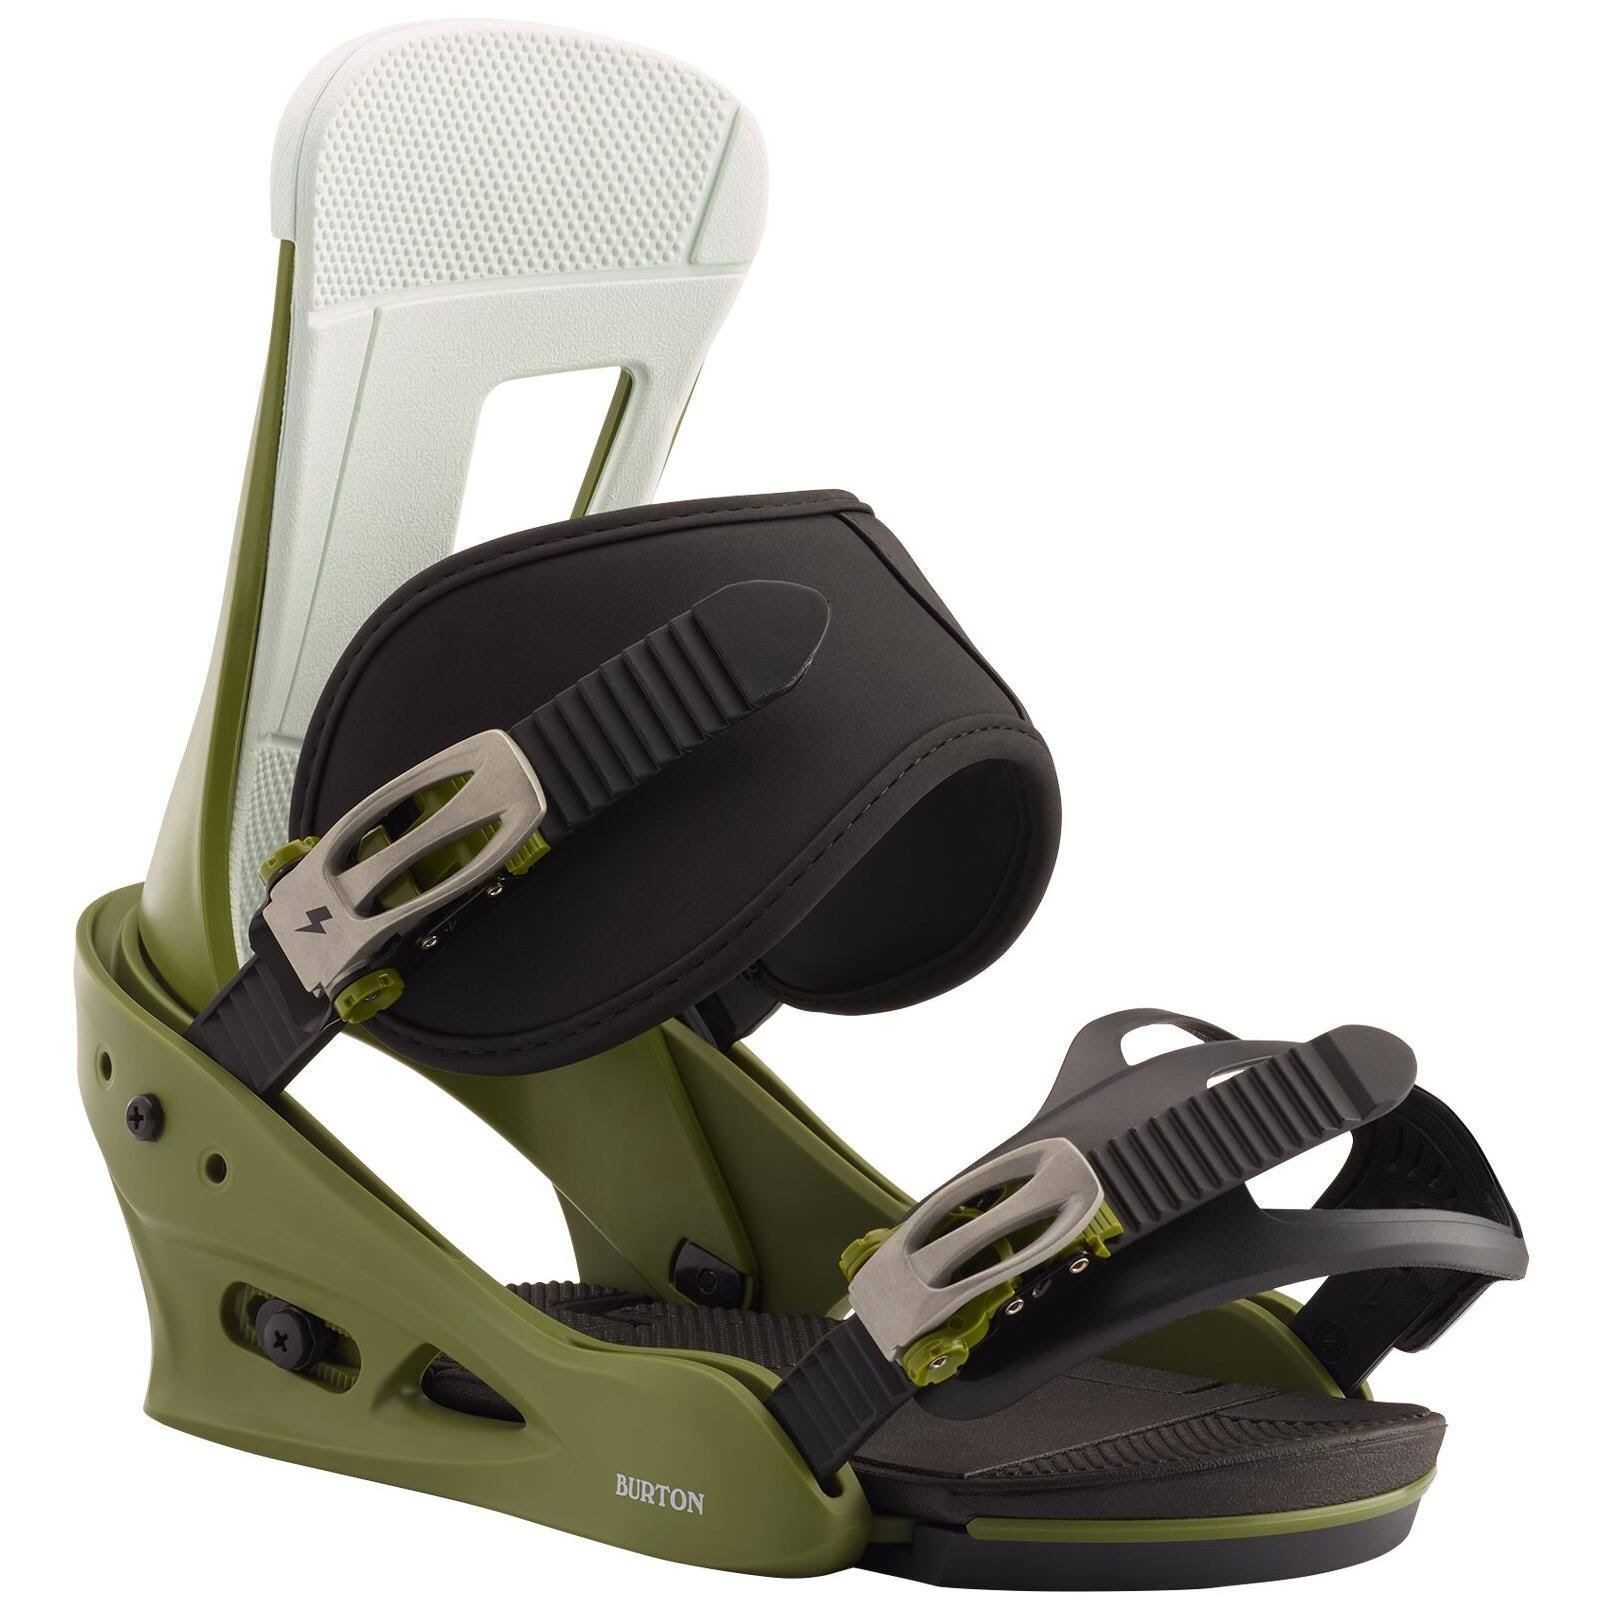 Burton Freestyle Binding 2020 Camp on Green